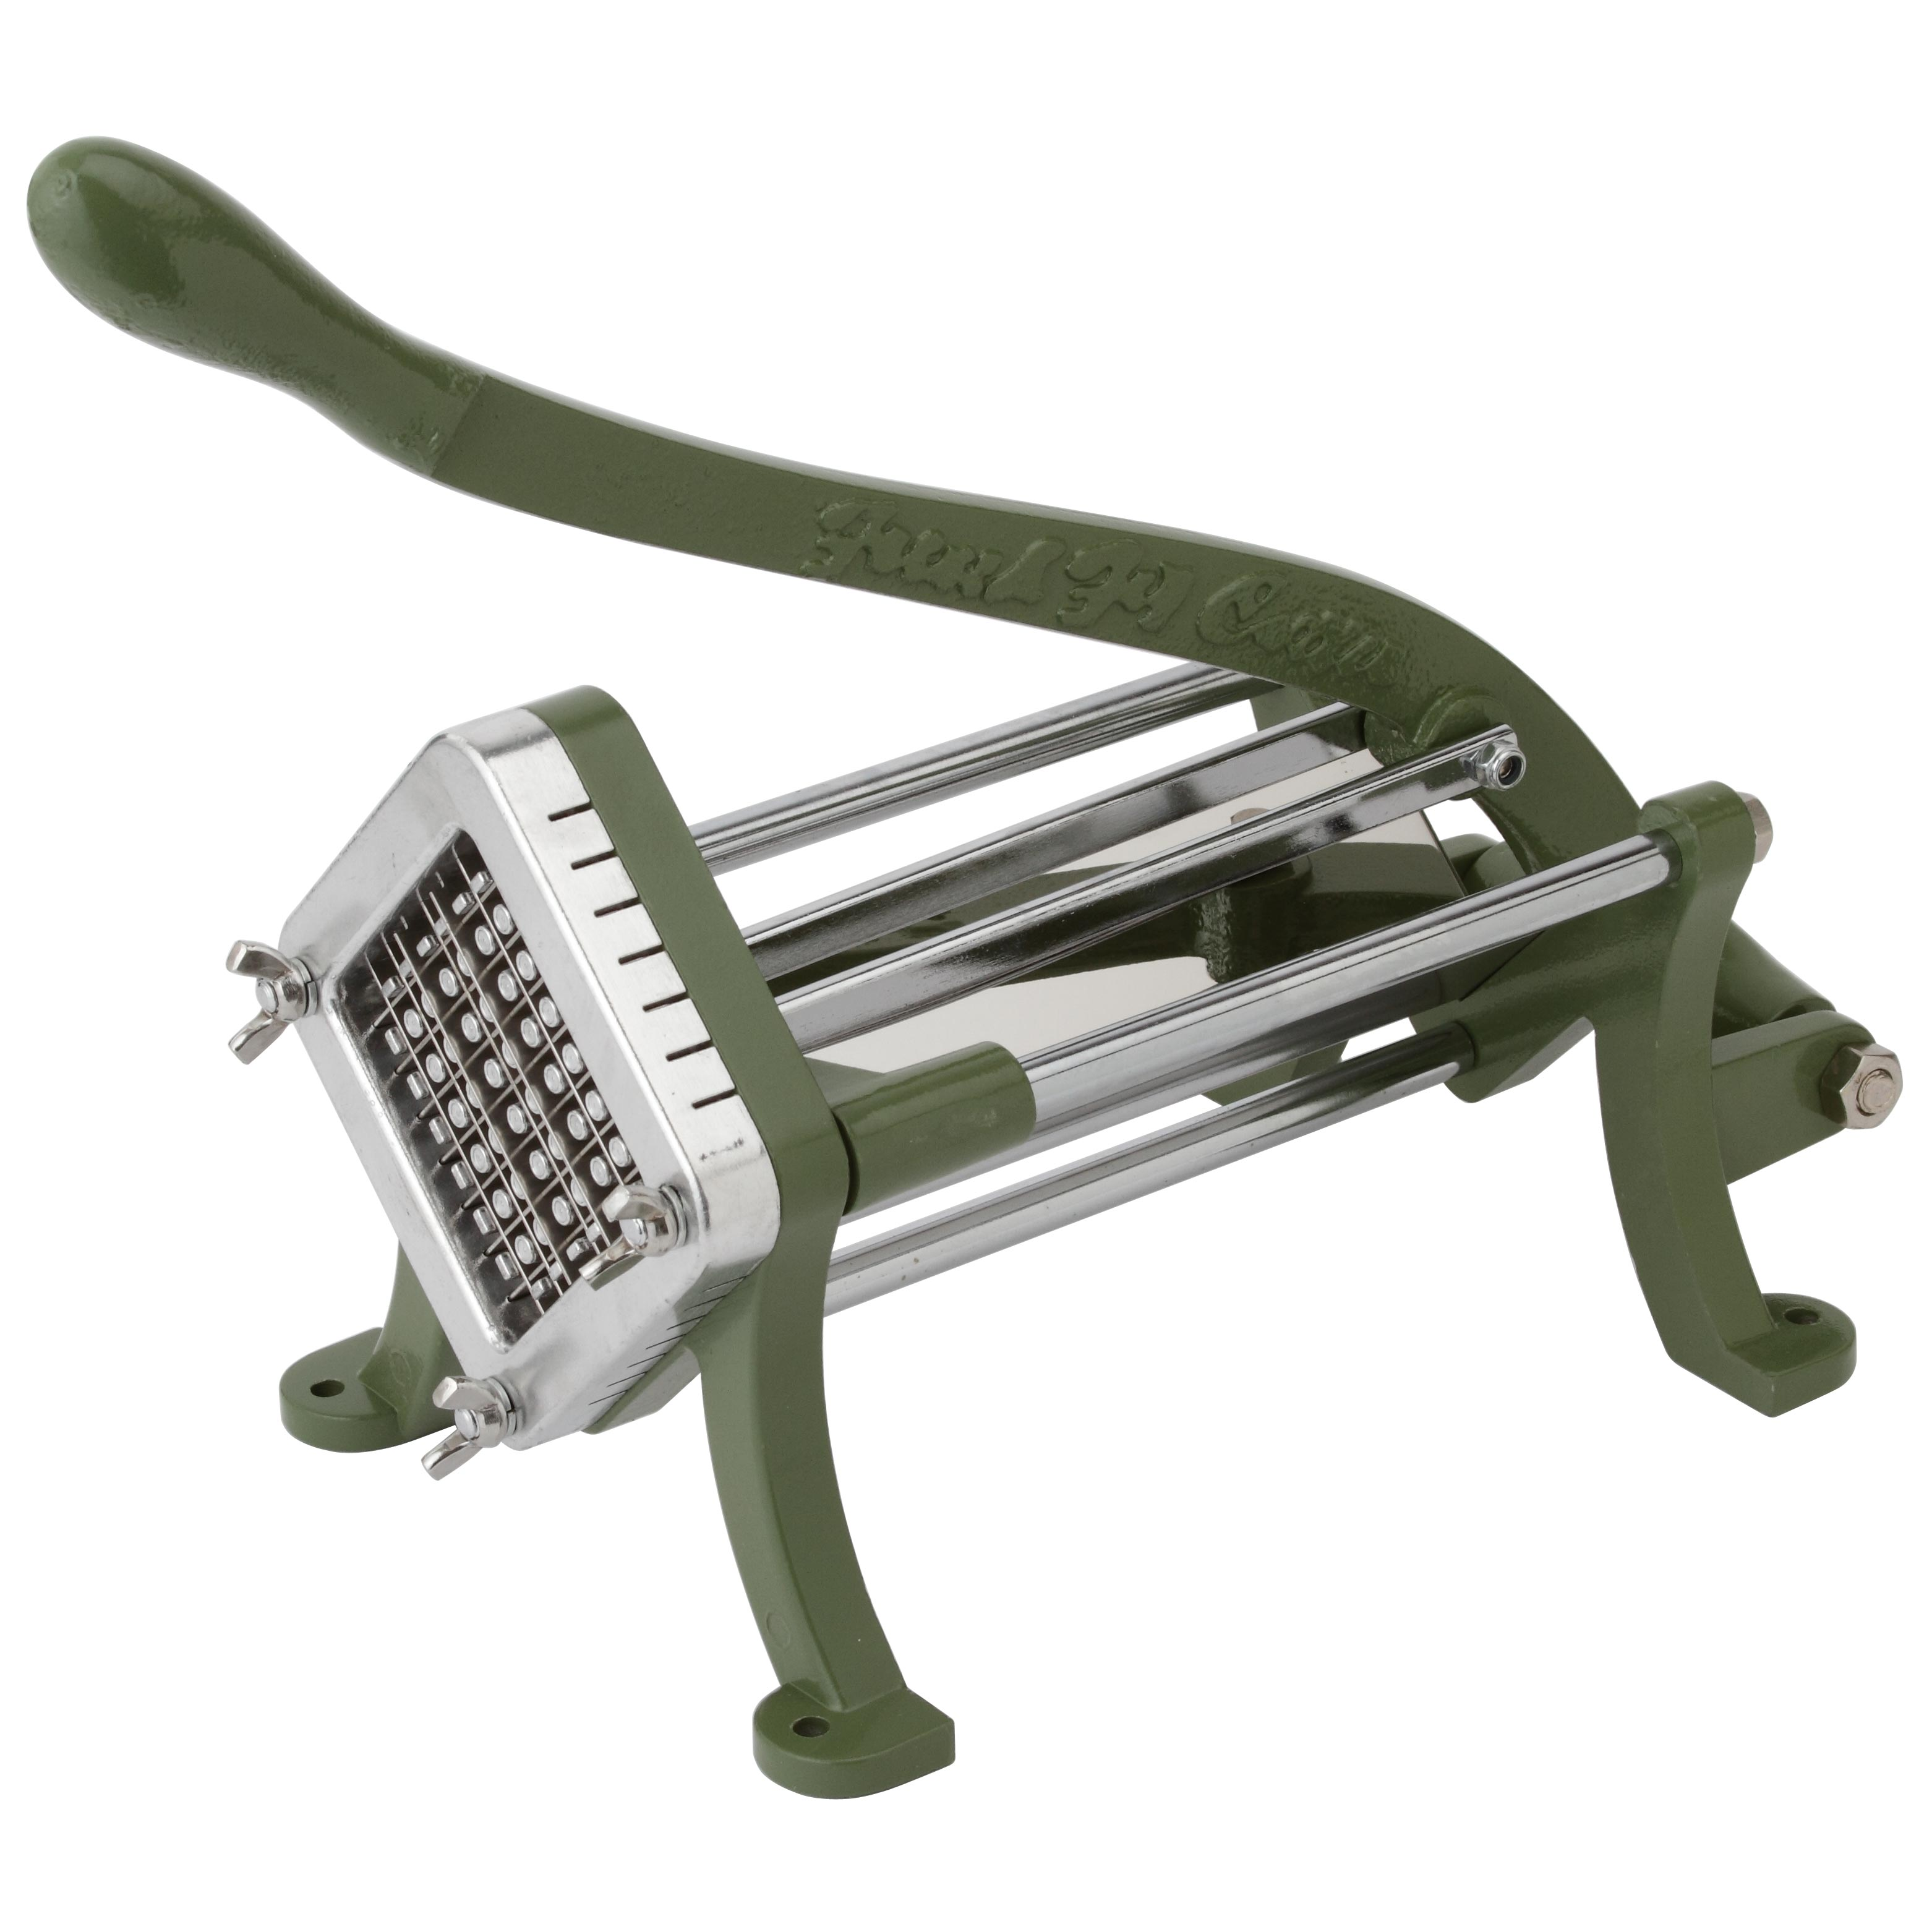 Royal Industries ROY FC 1/2 french fry cutter